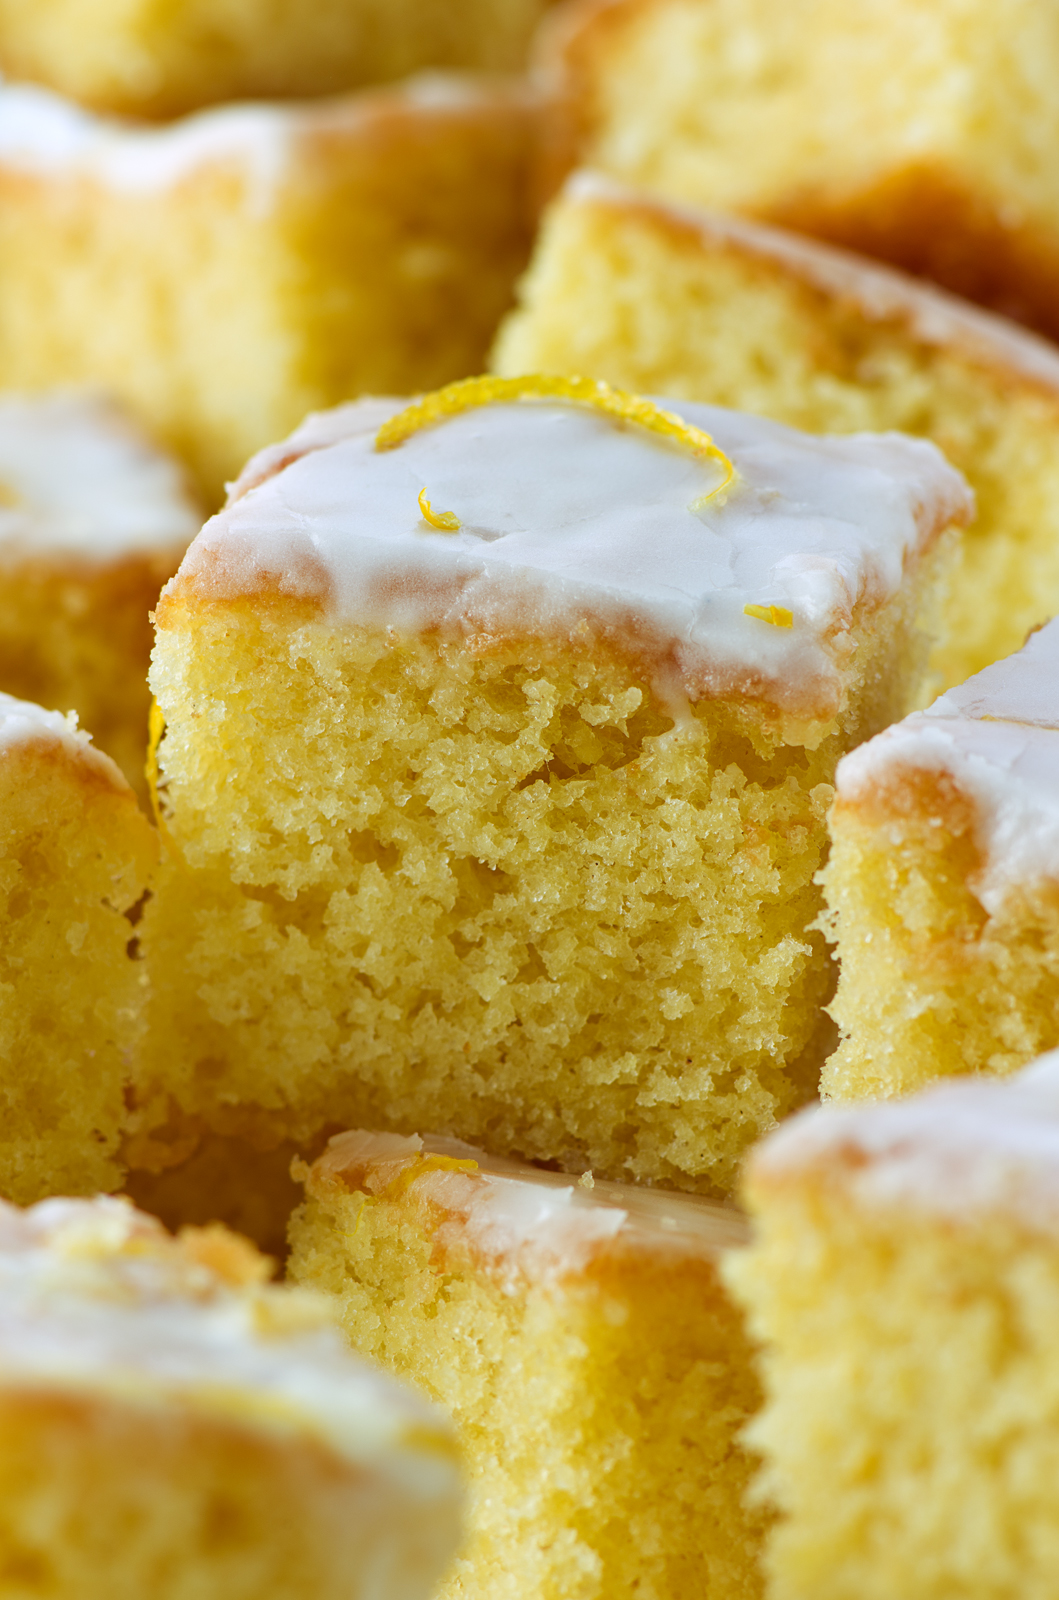 Dairgold lemon drizzle cake food photography with McCann erickson